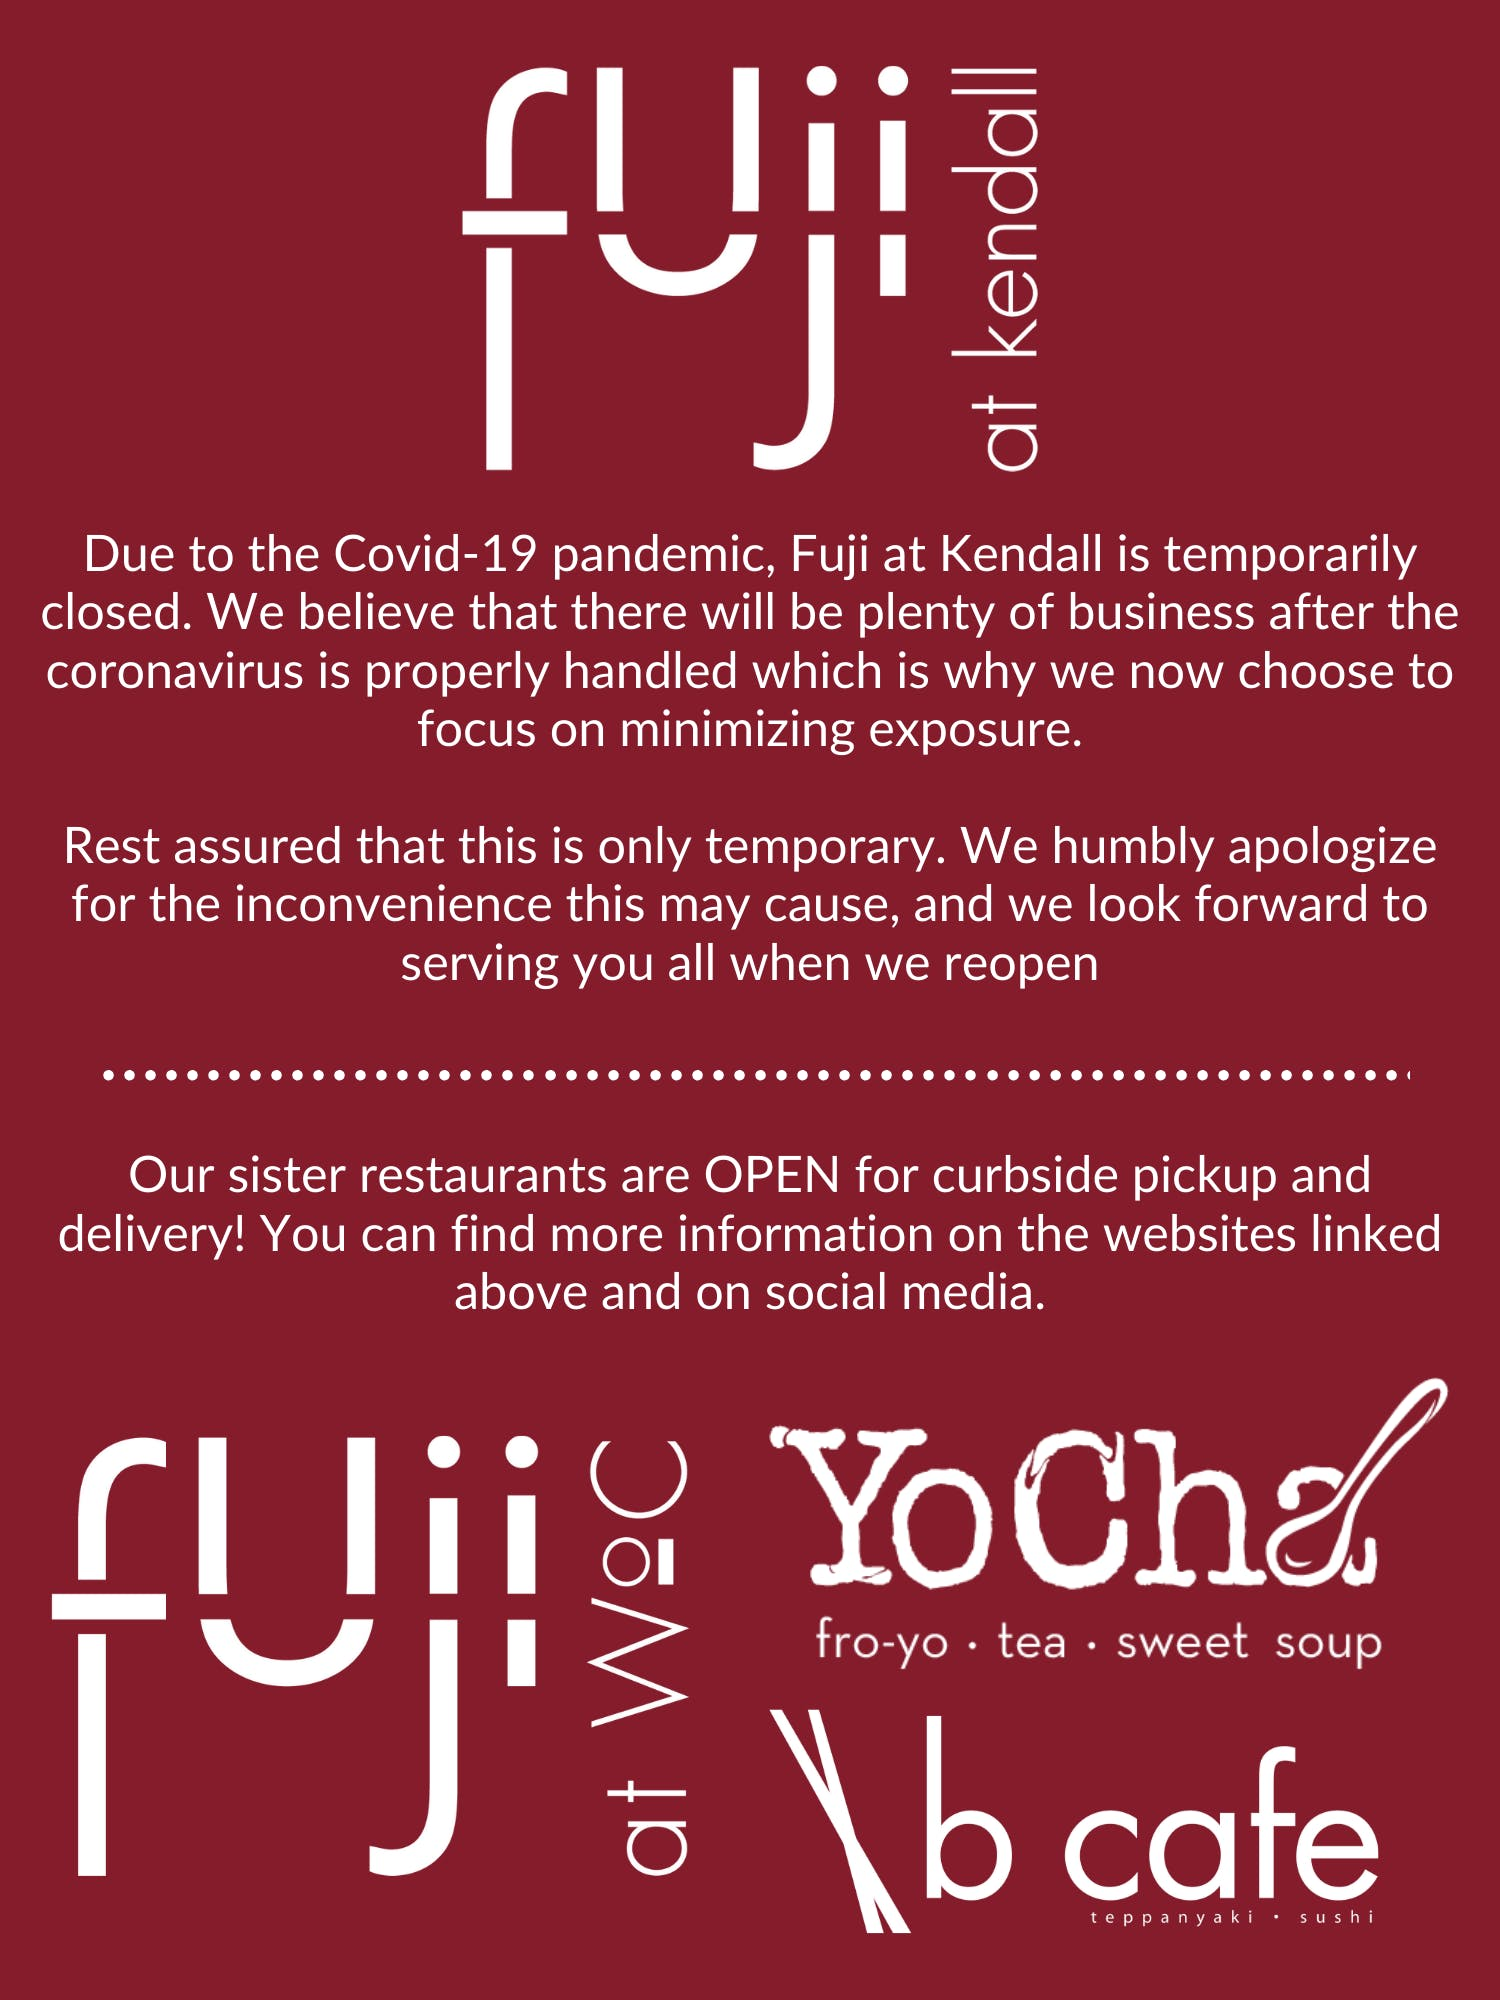 Fuji at Kendall is currently closed due to the Covid-19 pandemic. Please check out our sister restaurants Fuji at WoC, B Cafe, and YoCha!